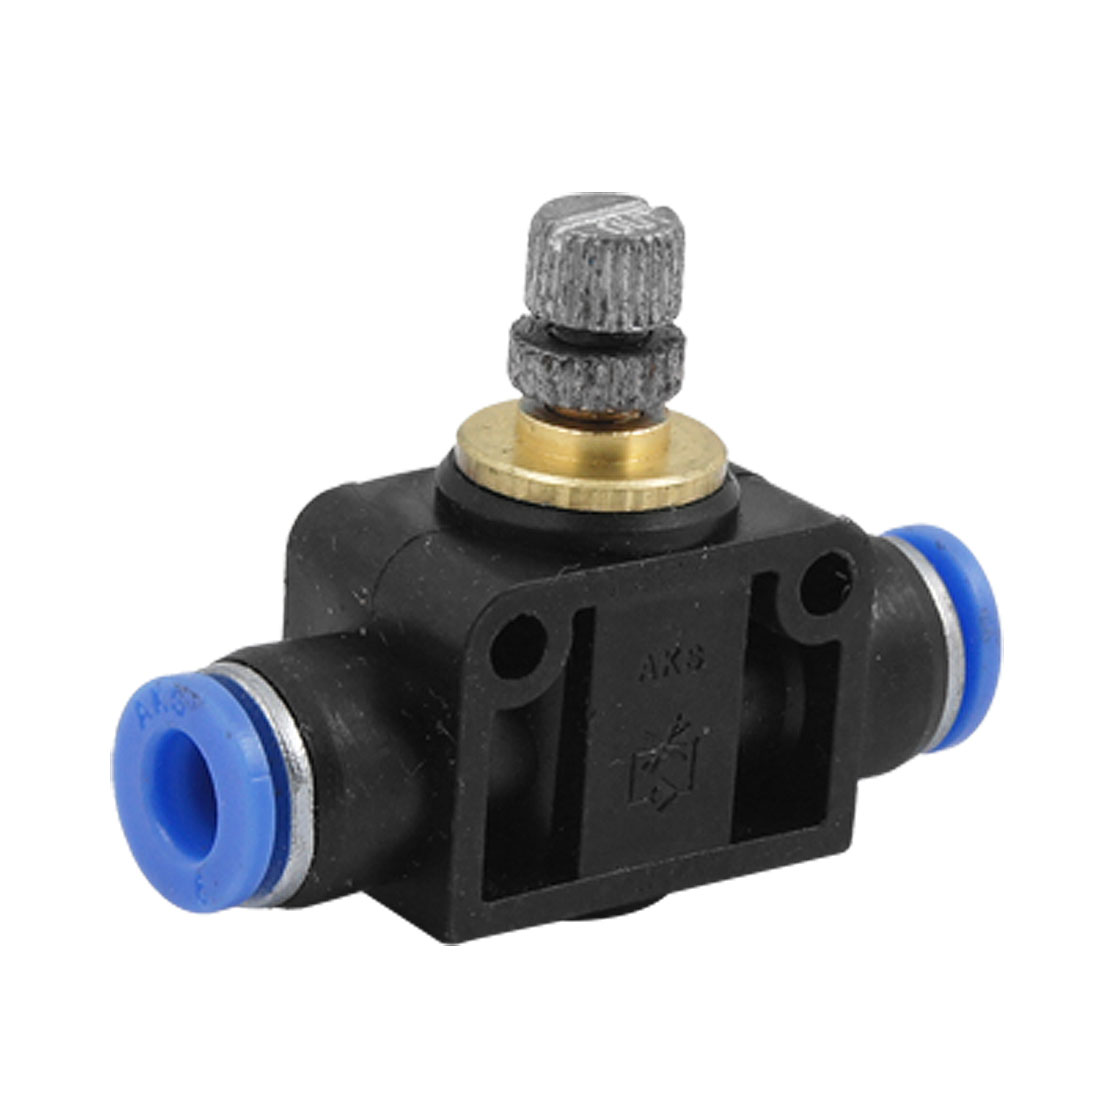 Pneumatic Air Flow Control Quick Connect Fitting 6mm